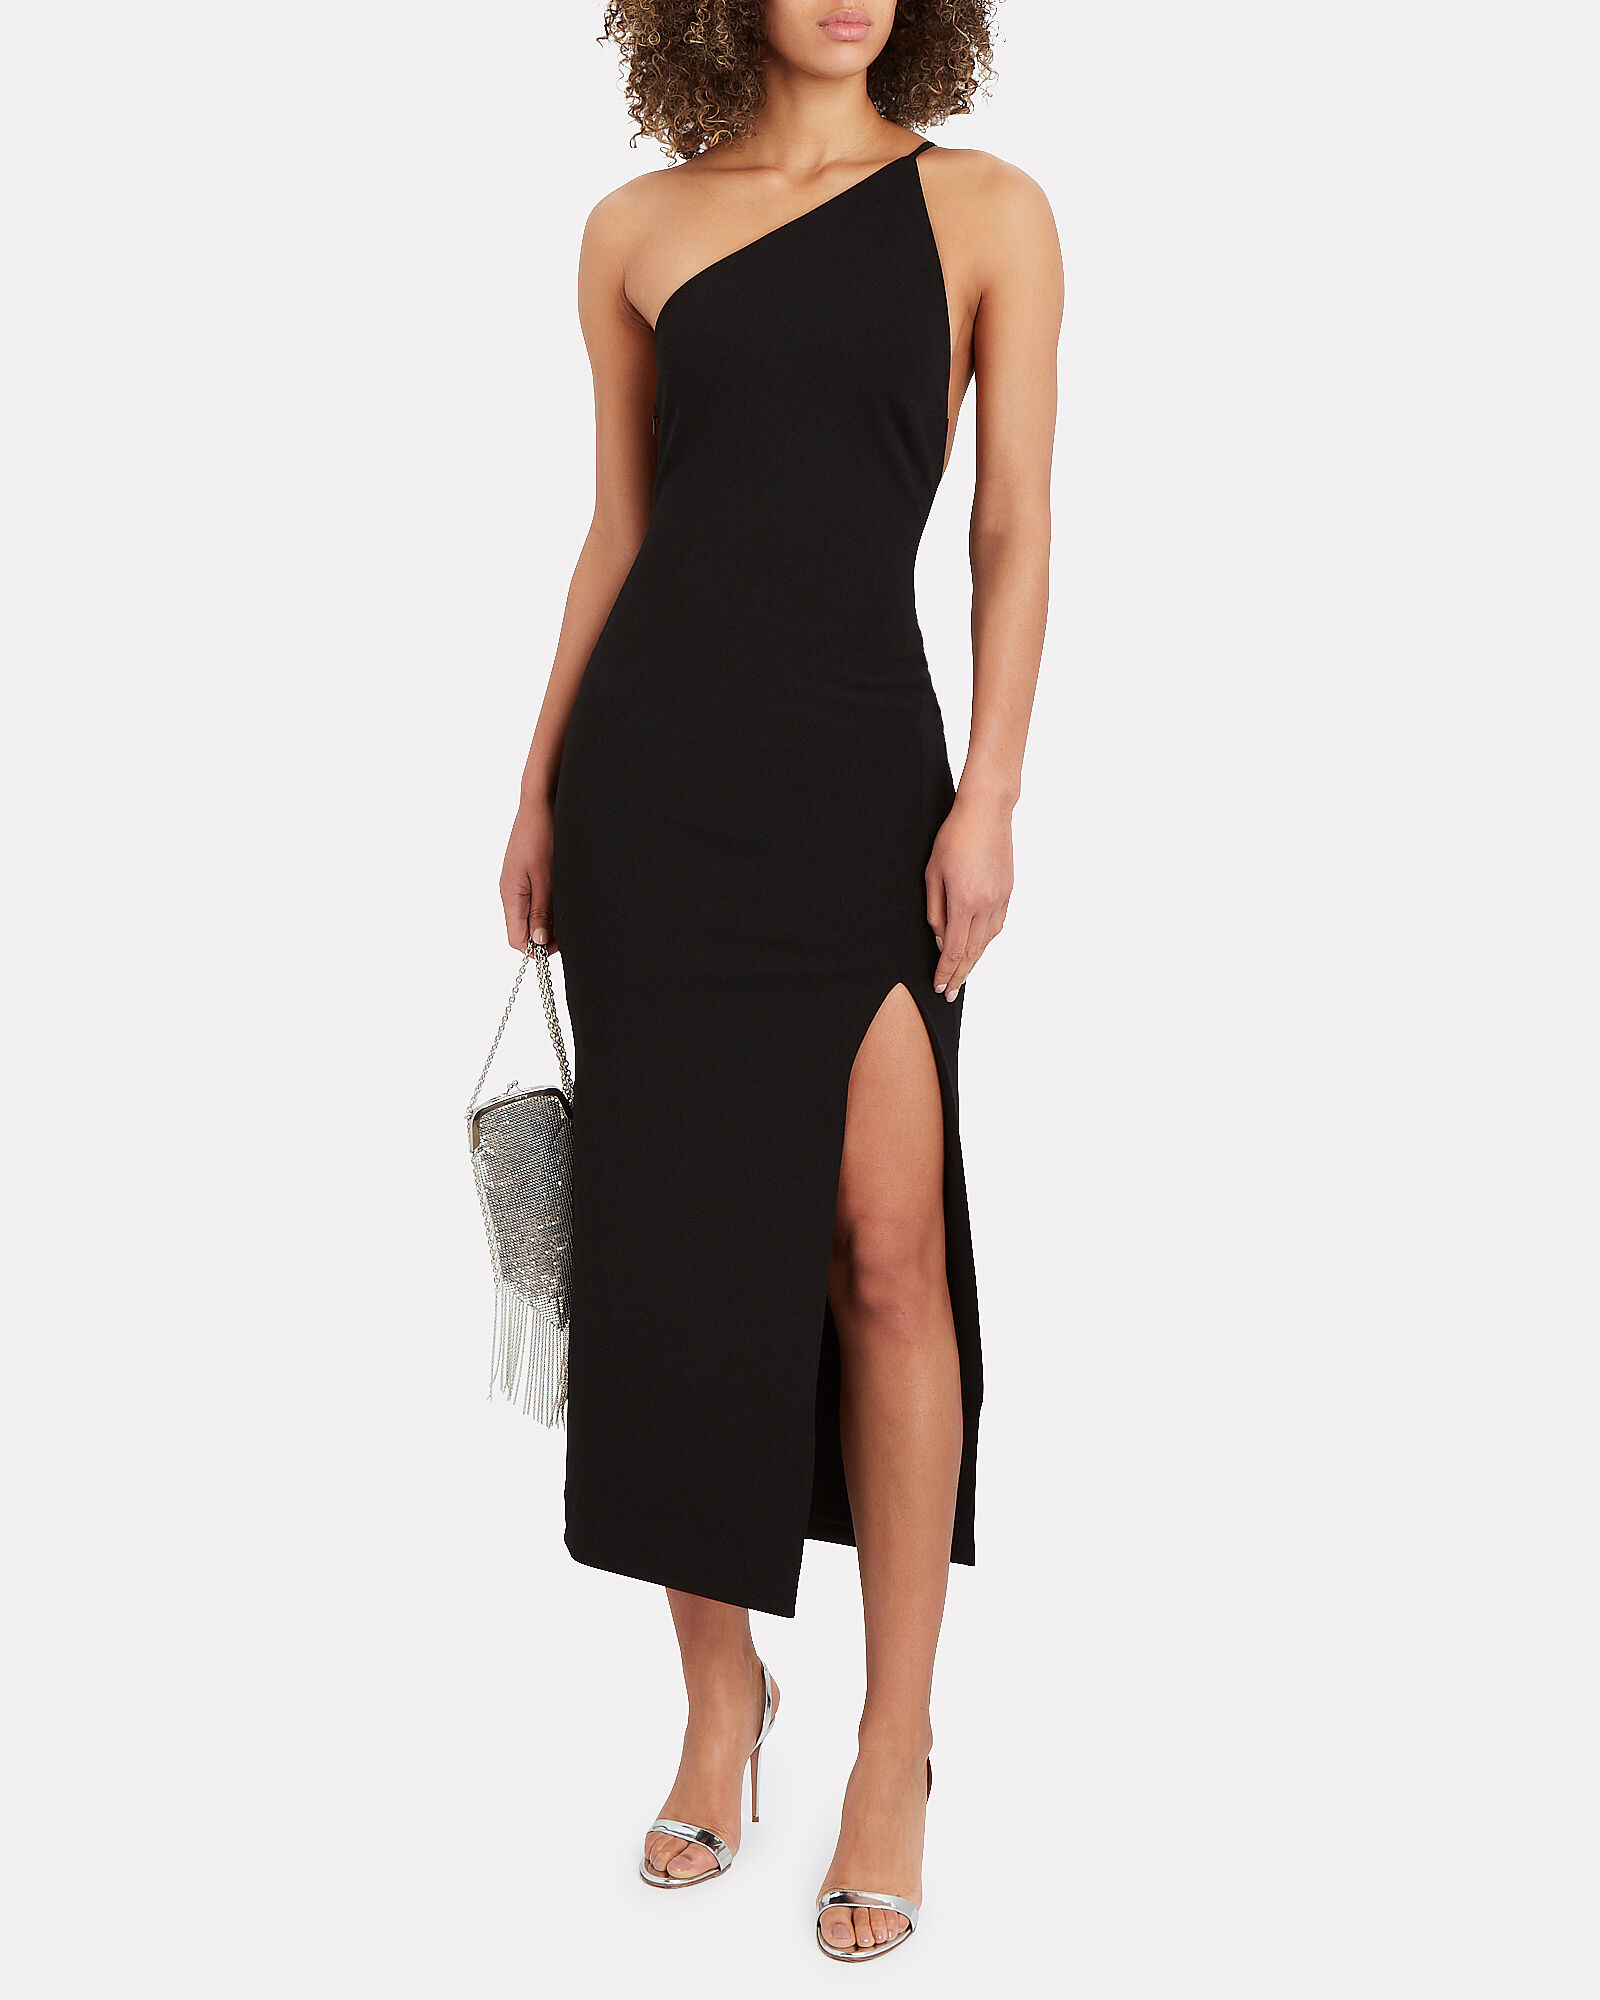 Natalya One-Shoulder Midi Dress, BLACK, hi-res